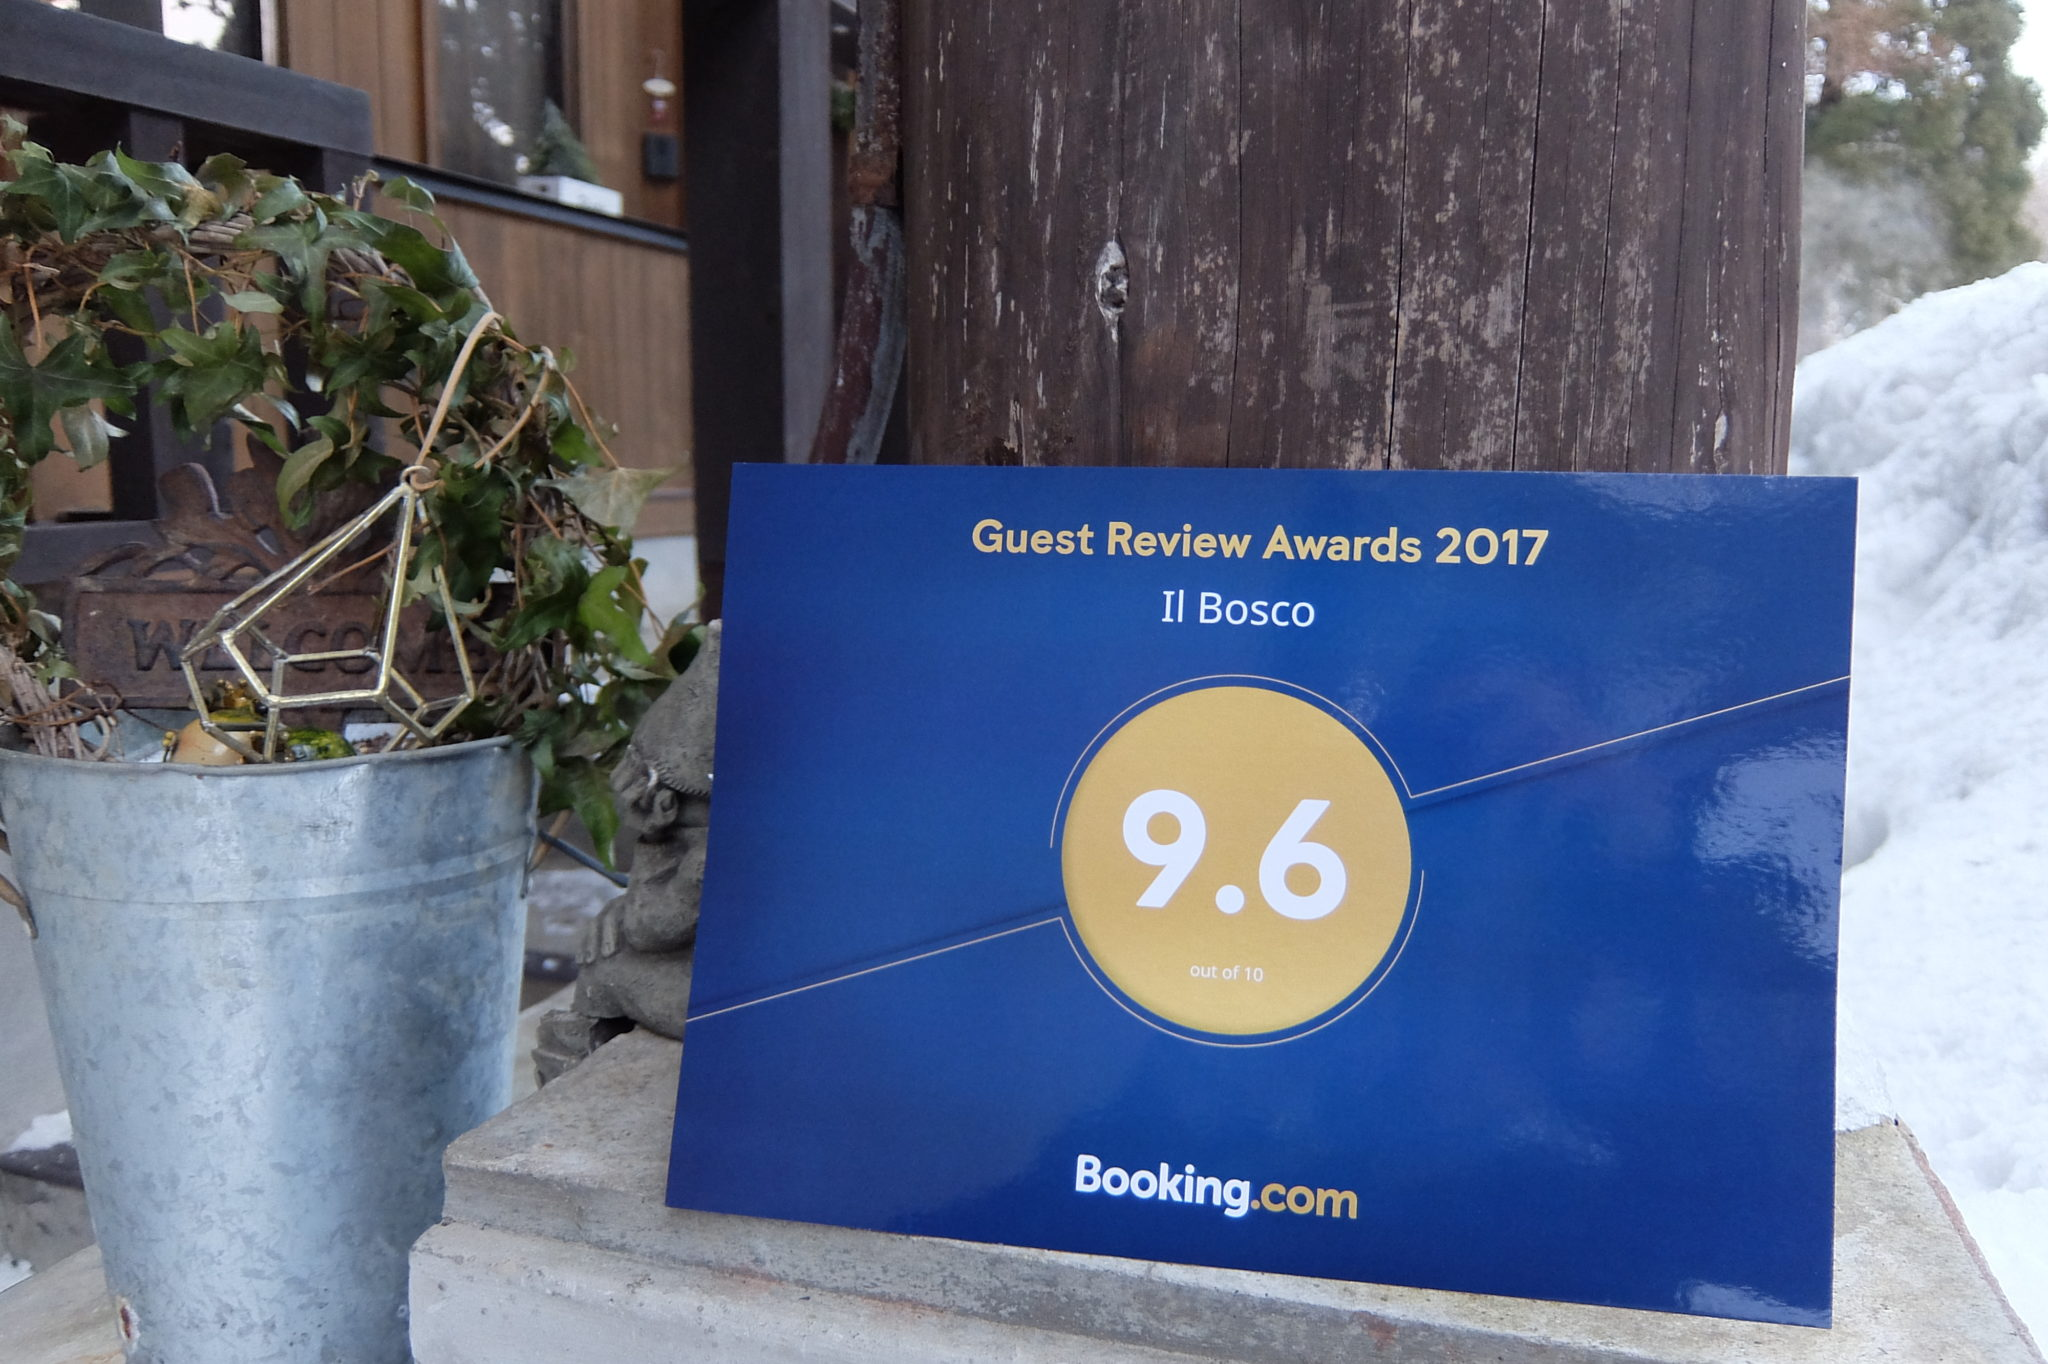 The Guest Review Award From Booking.com